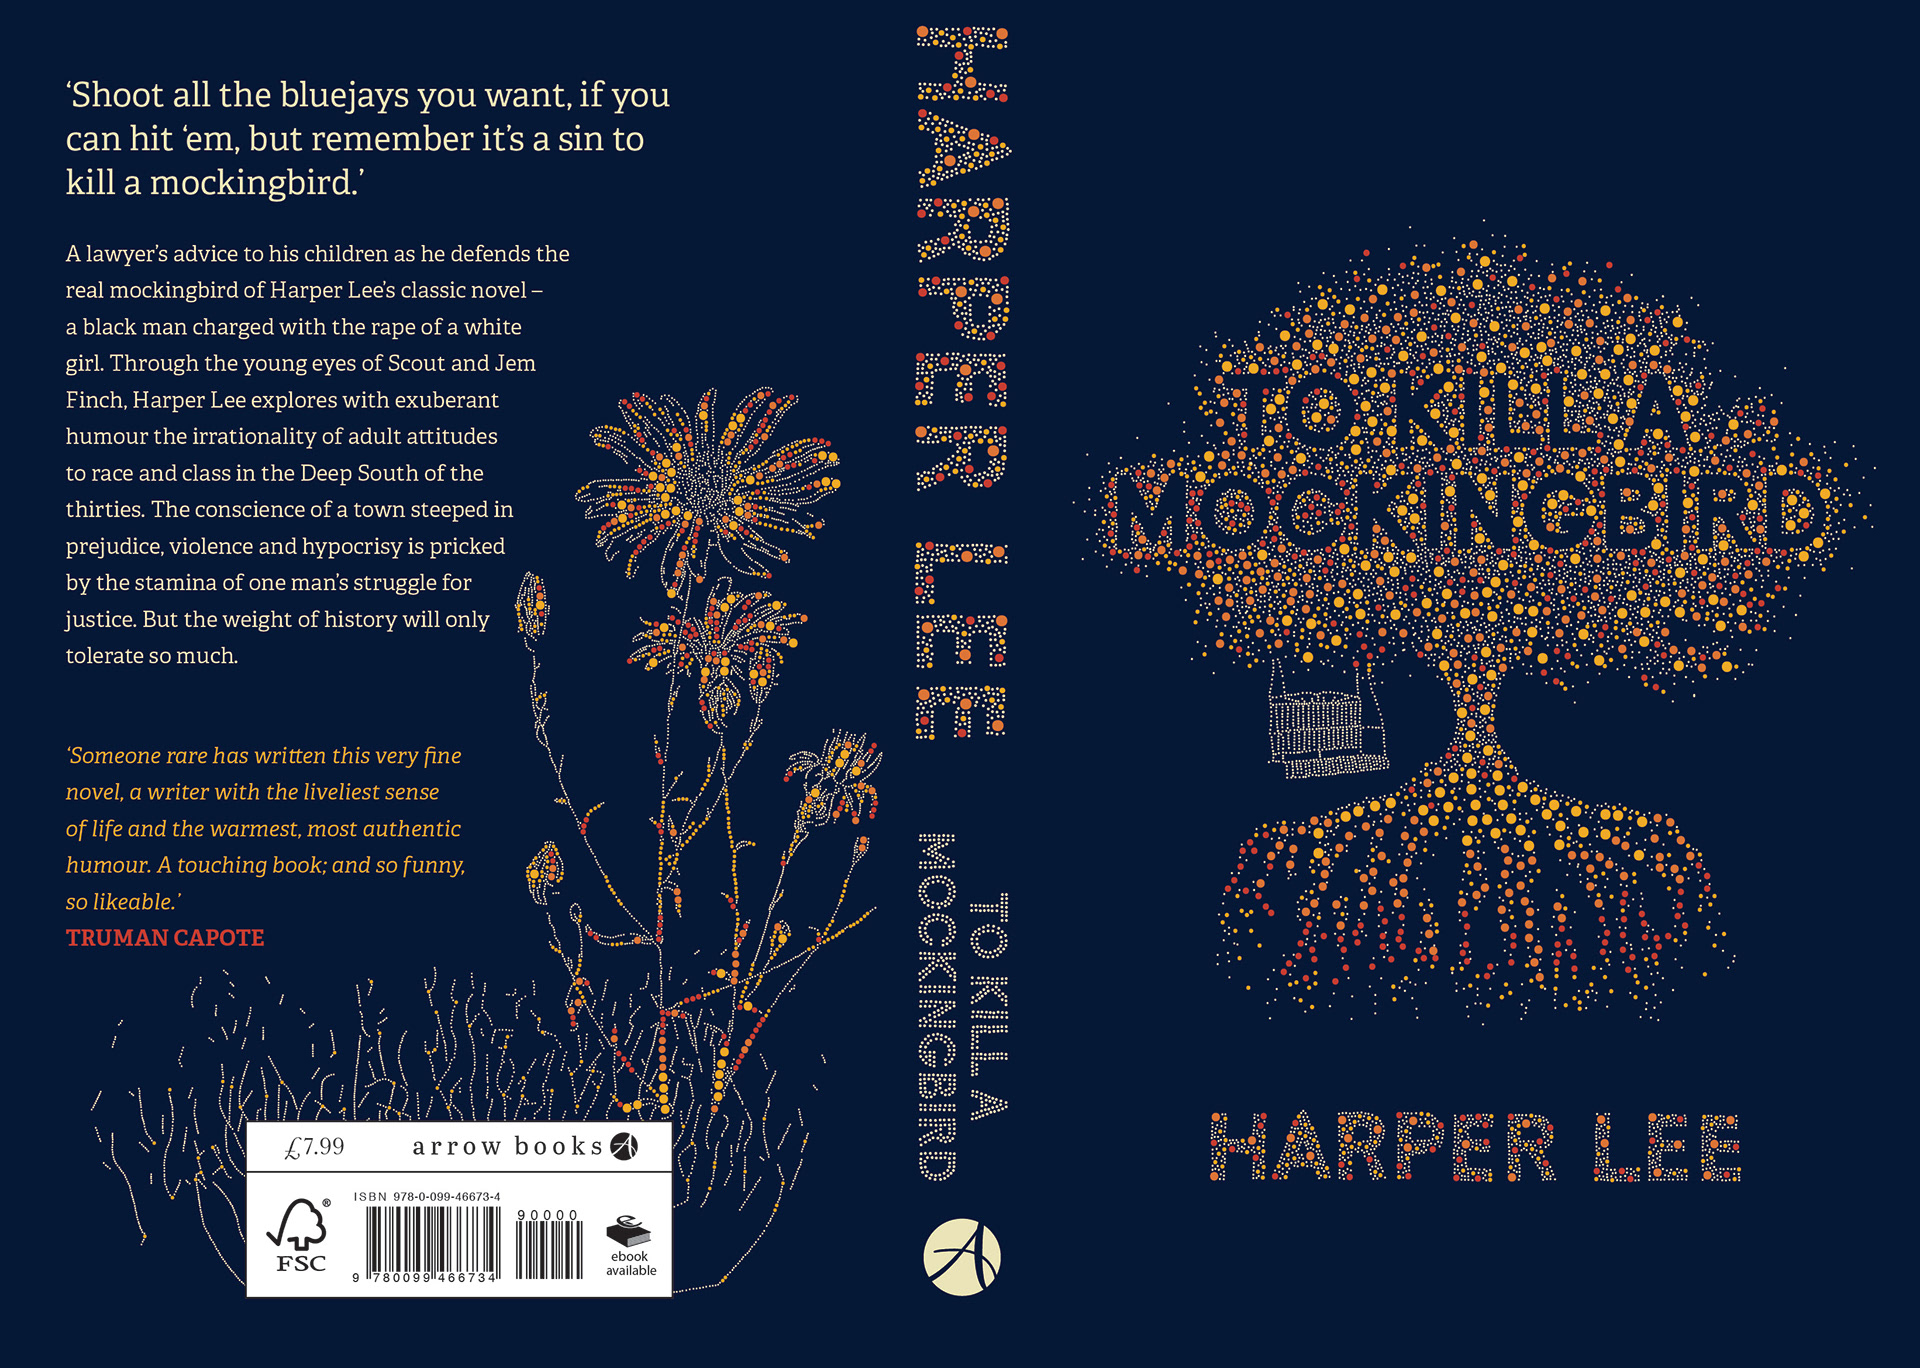 Redesign of Harper Lee's 'To Kill a Mocking Bird'